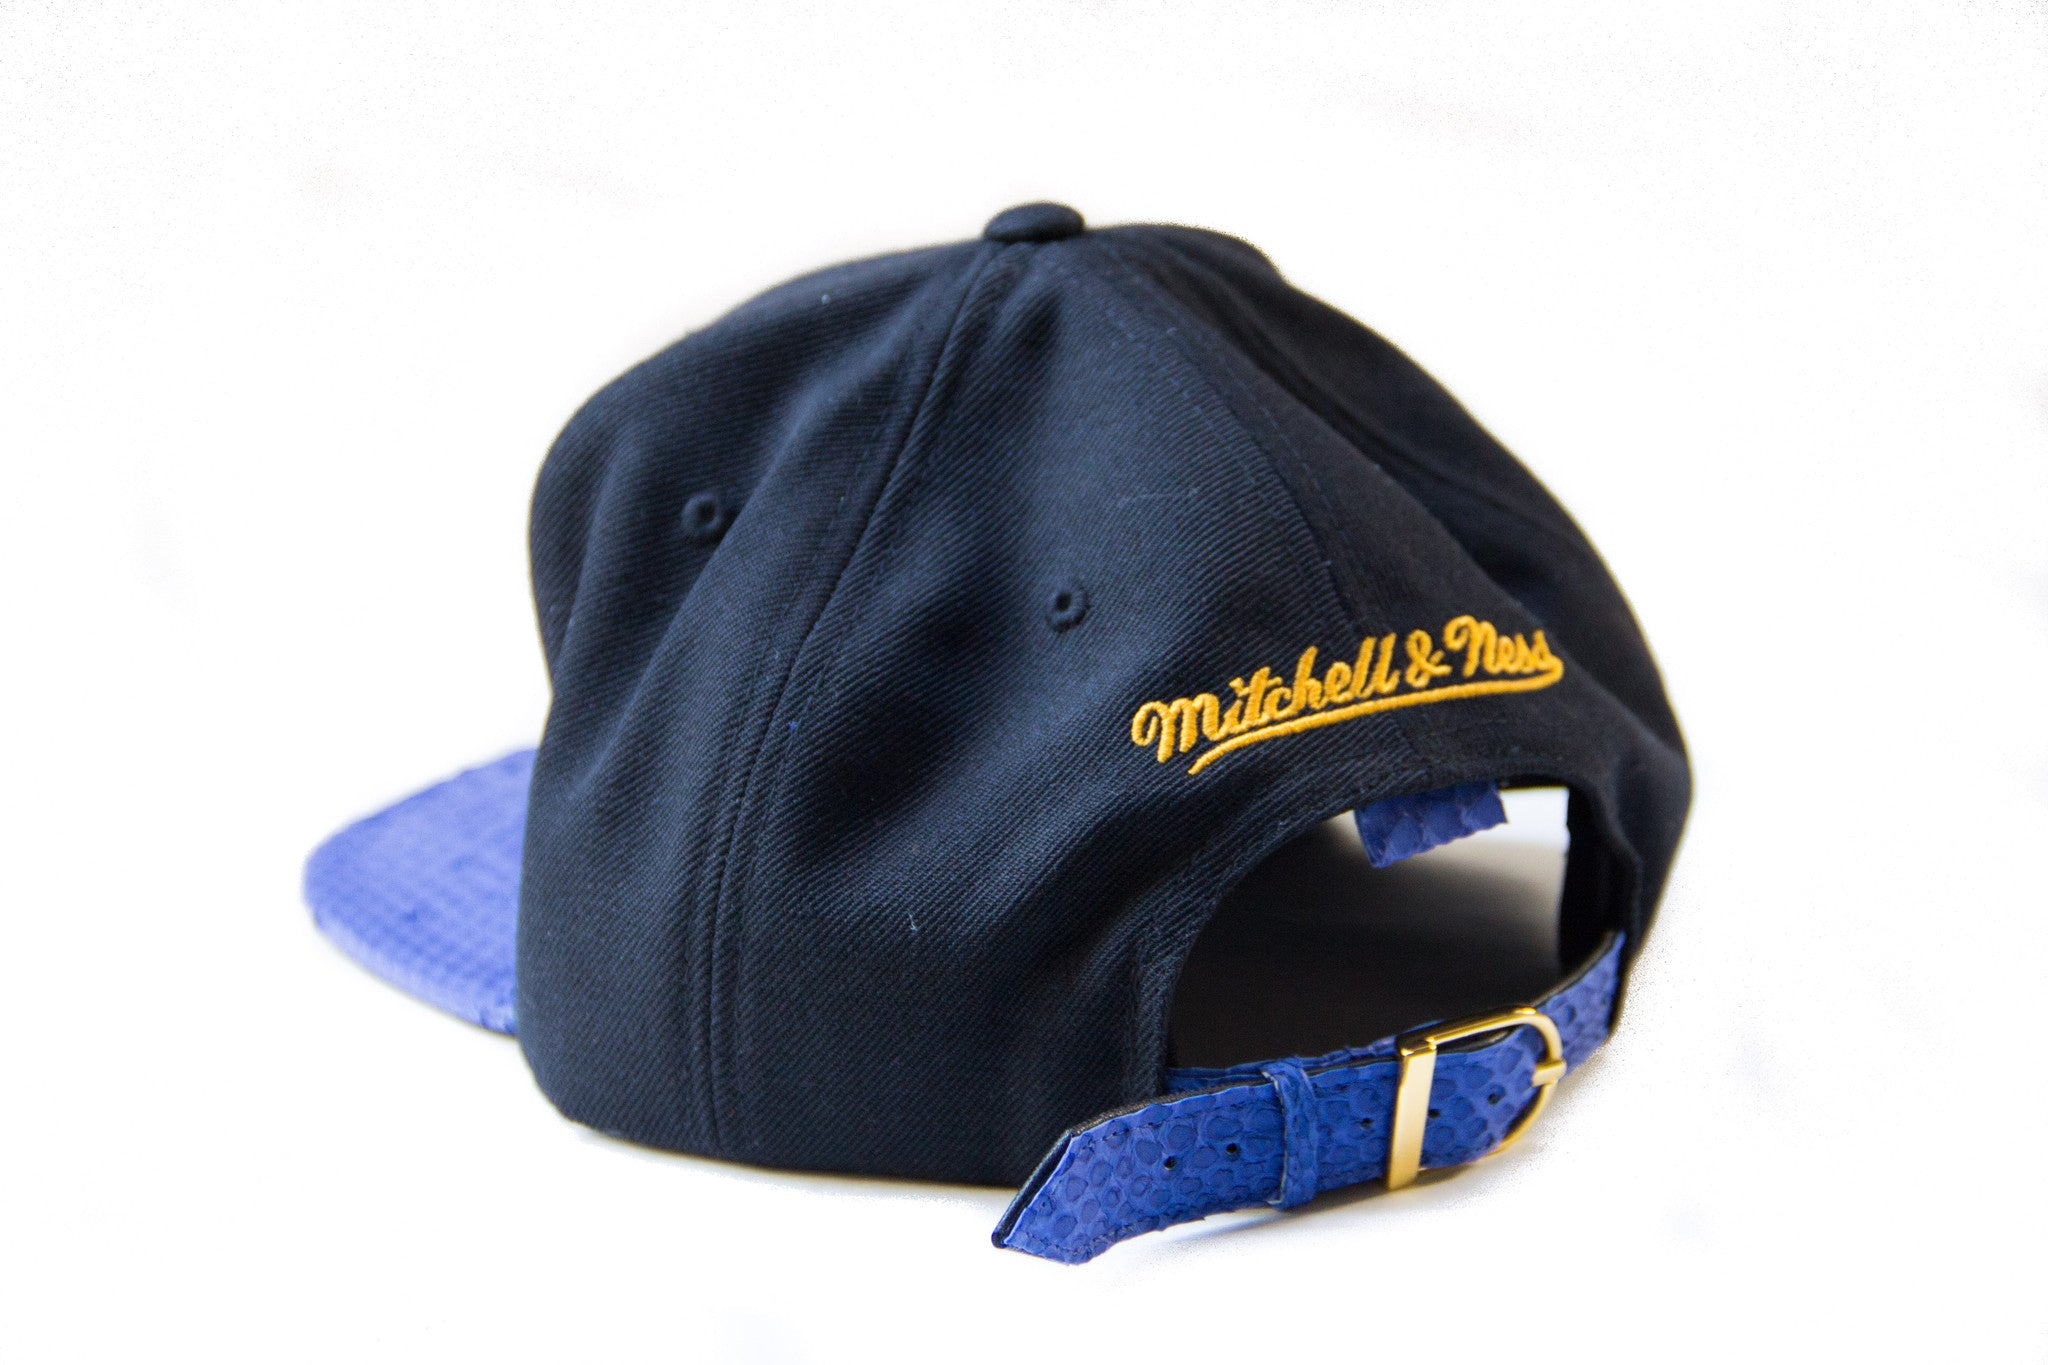 HATSURGEON x Mitchell & Ness San Francisco Warriors XL Logo Strapback